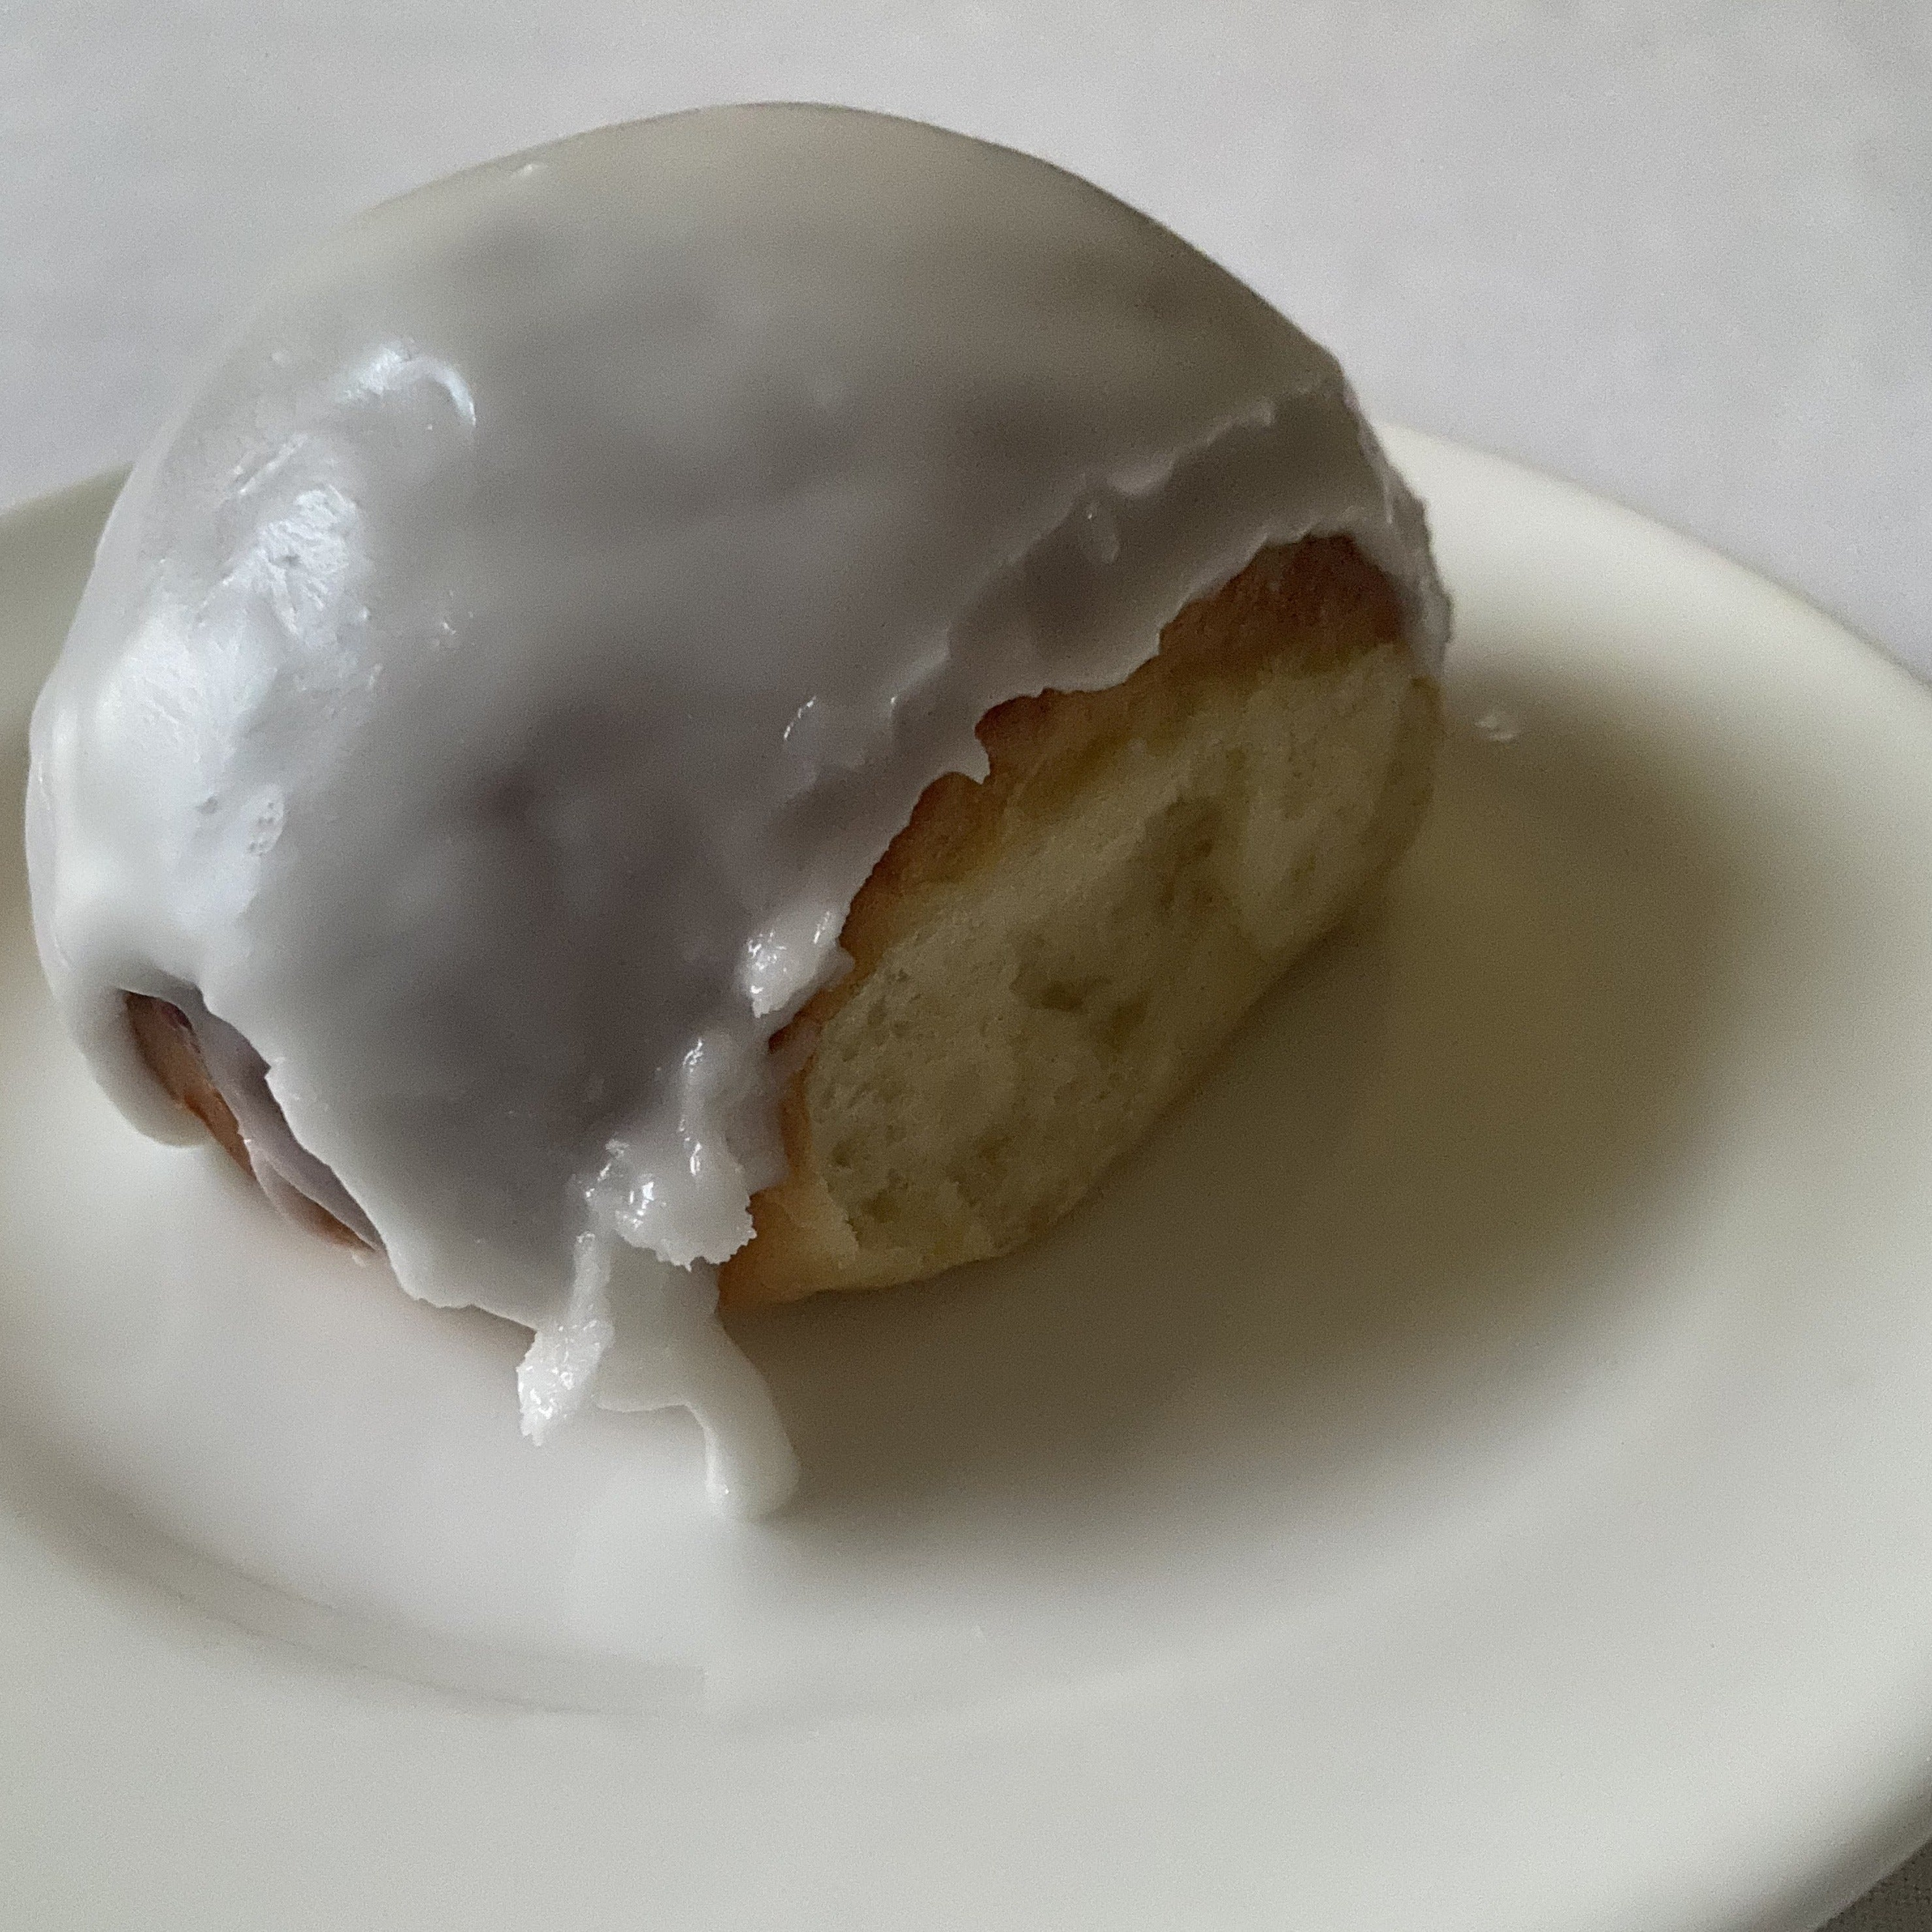 Amalfi Lemon Iced Bun